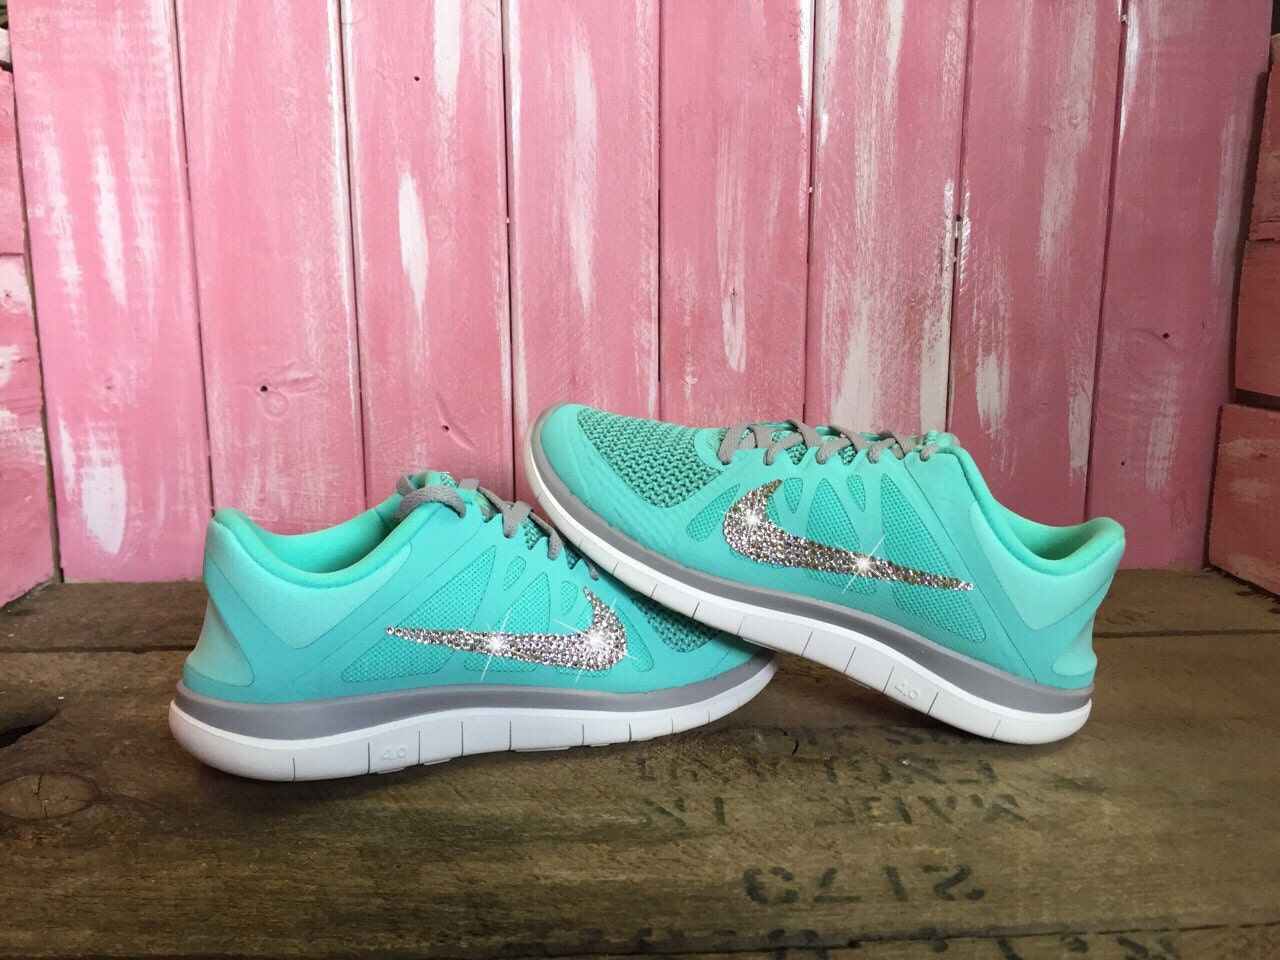 Blinged Nike Free Run 4.0 V4 Premium Running Shoes Hyper Turquoise Grey  Customized With Swarovski Crystal Rhinestones Bling e7dd0148d7